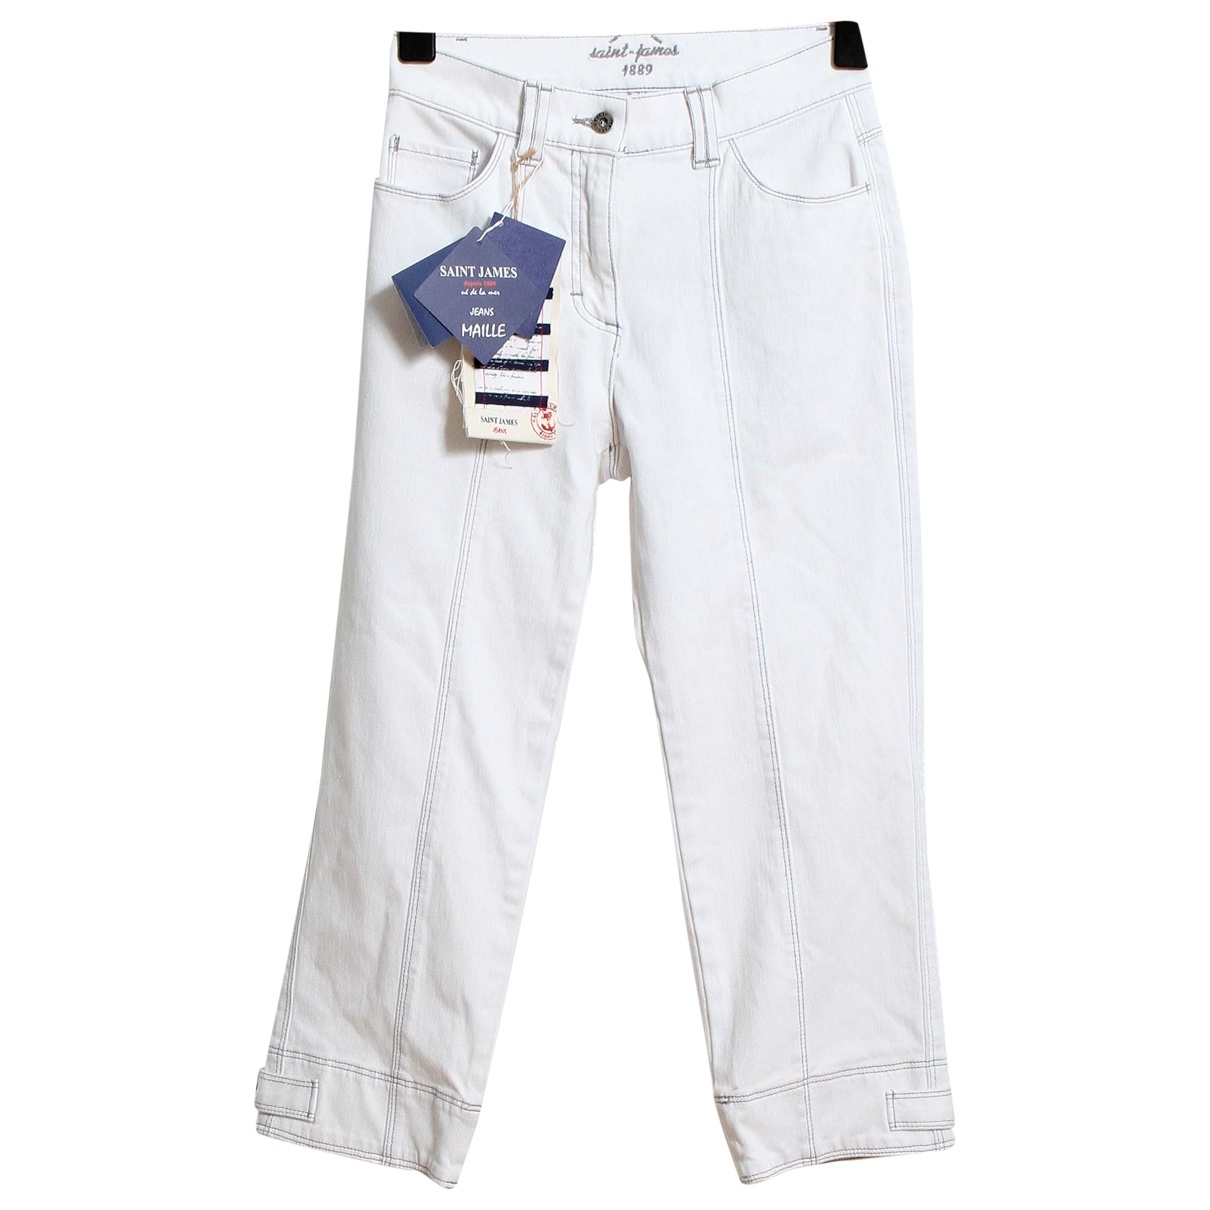 Saint James \N White Cotton Trousers for Women 36 FR